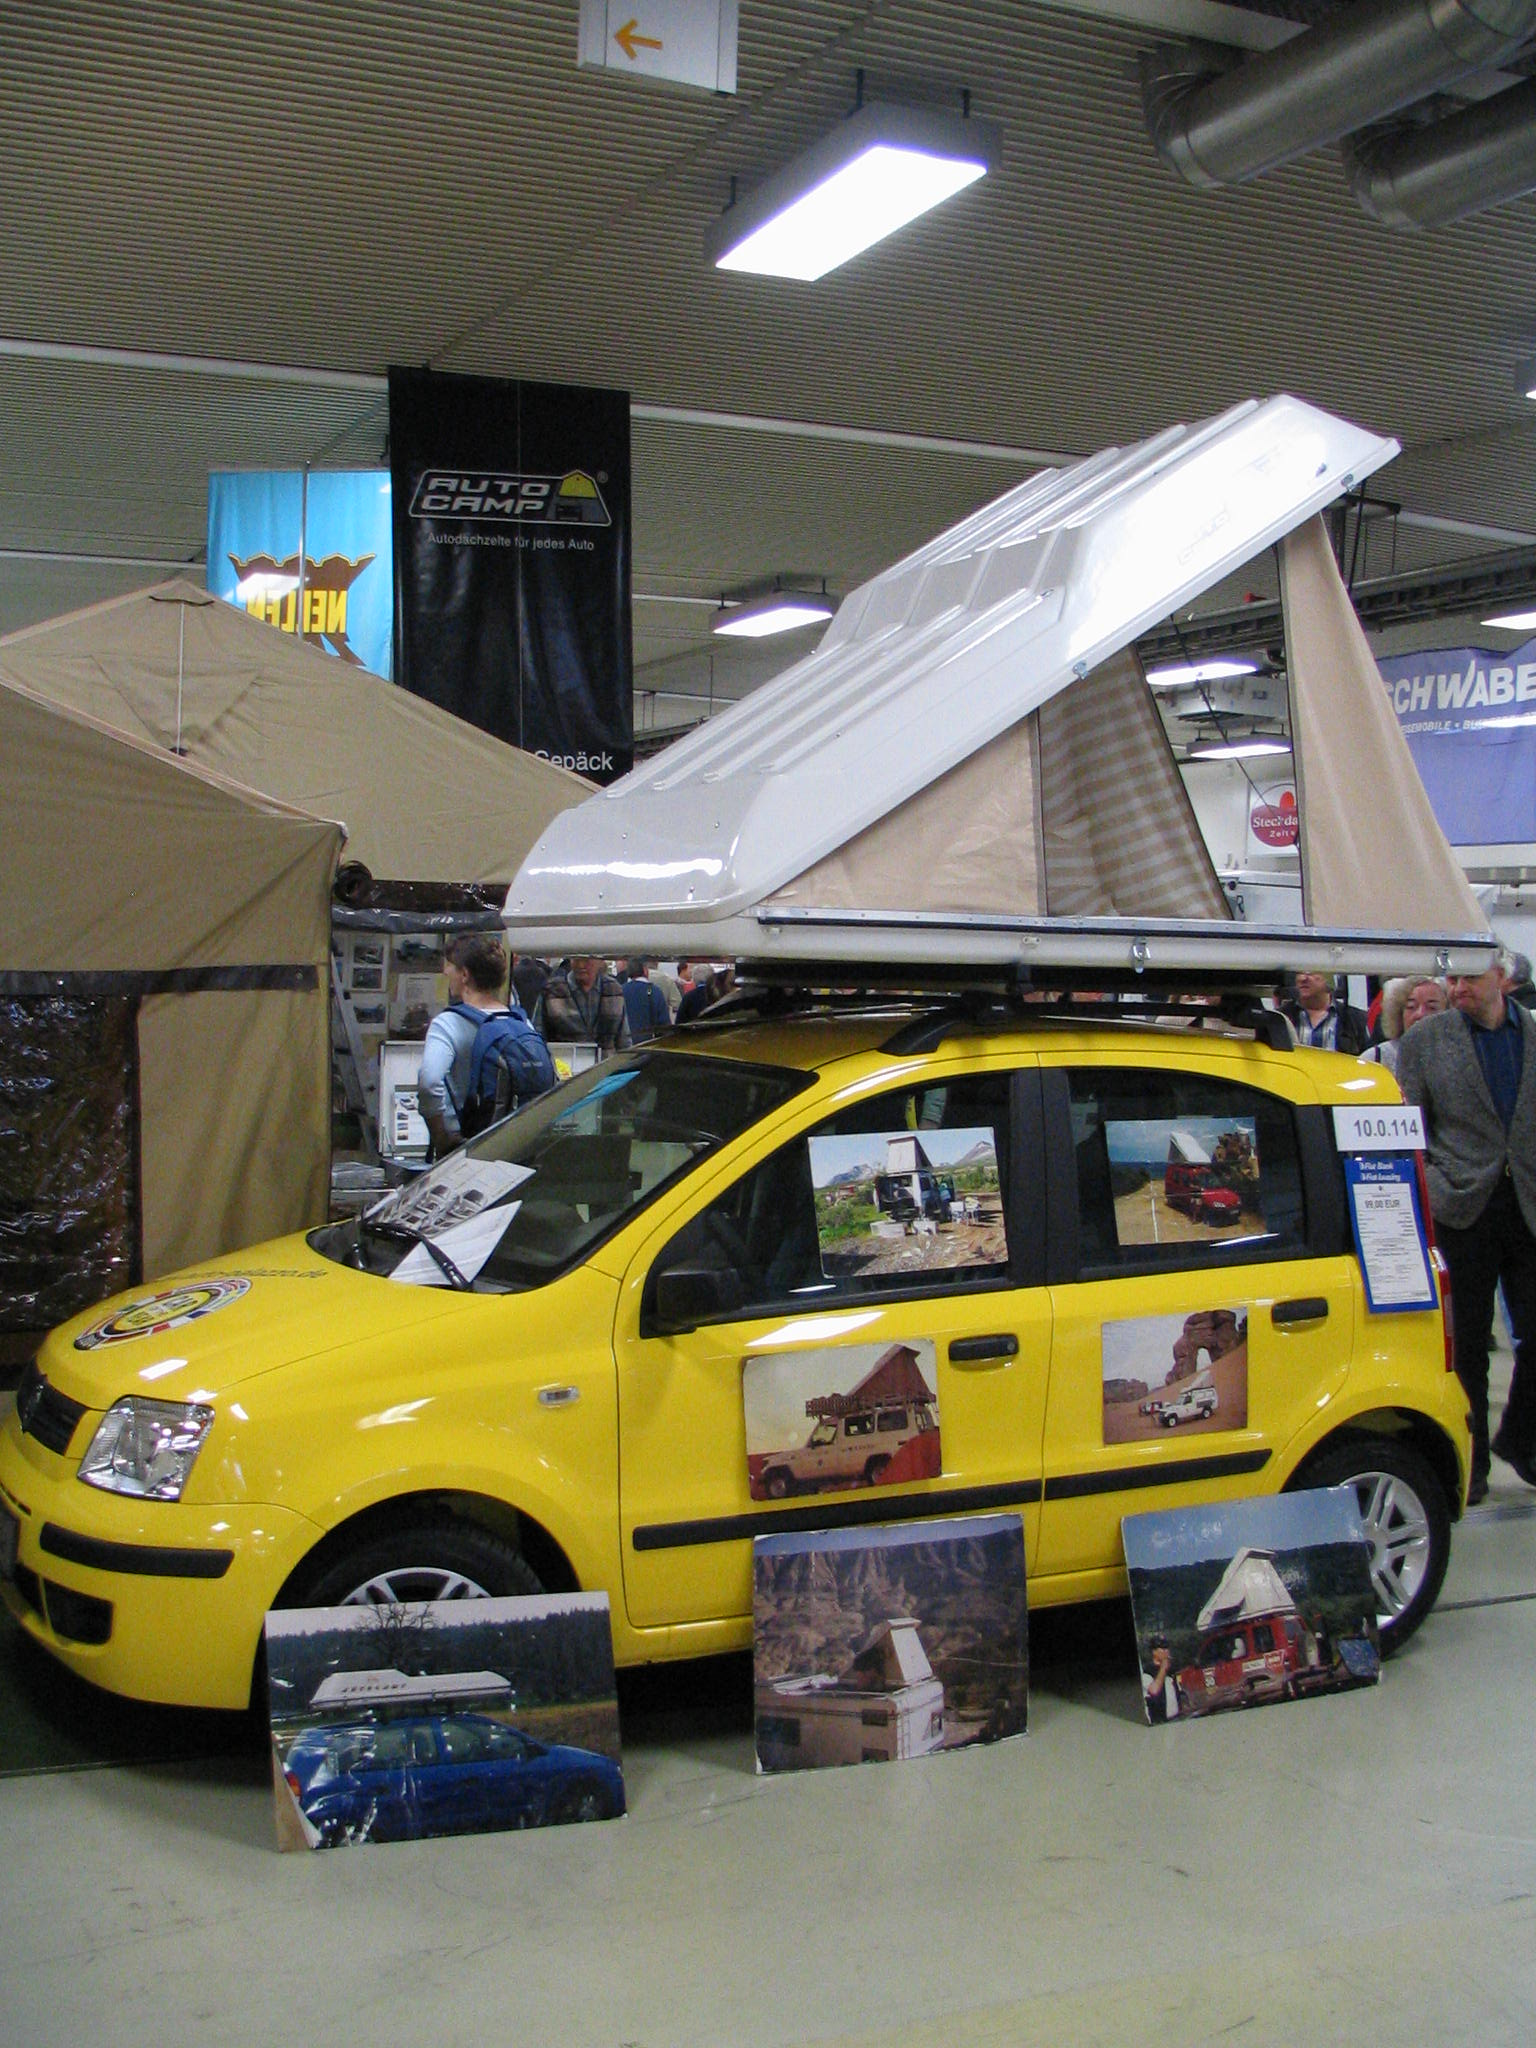 & Roof tent - cheap vacation for young pairs